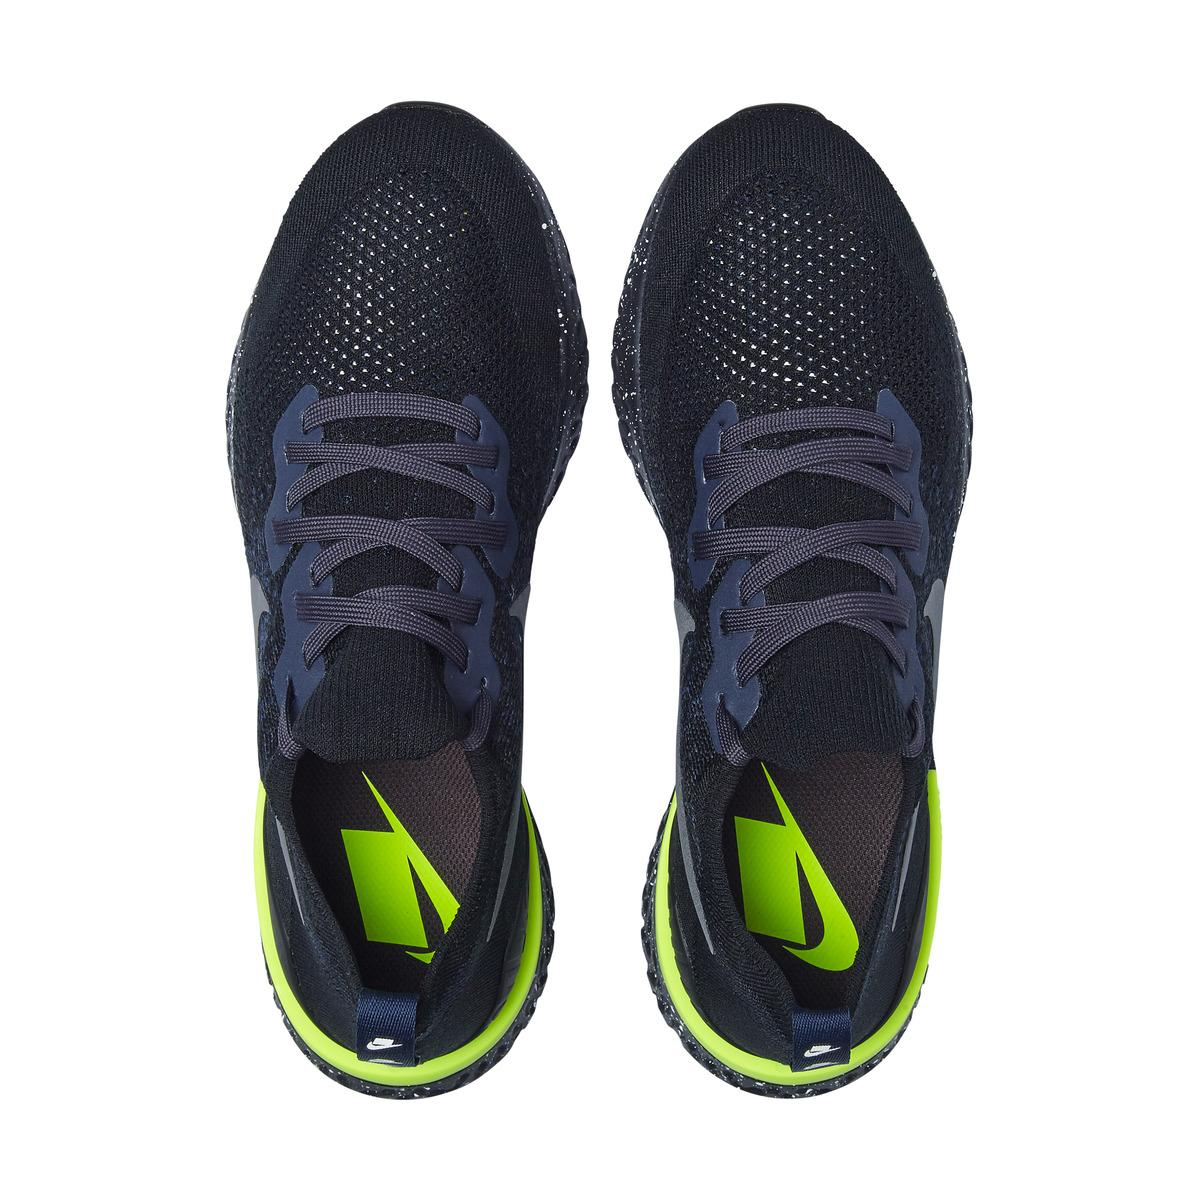 brillo de color sombras de diseño elegante Nike Epic React Flyknit 2 Se Running Shoes in Black / Blue (Blue ...